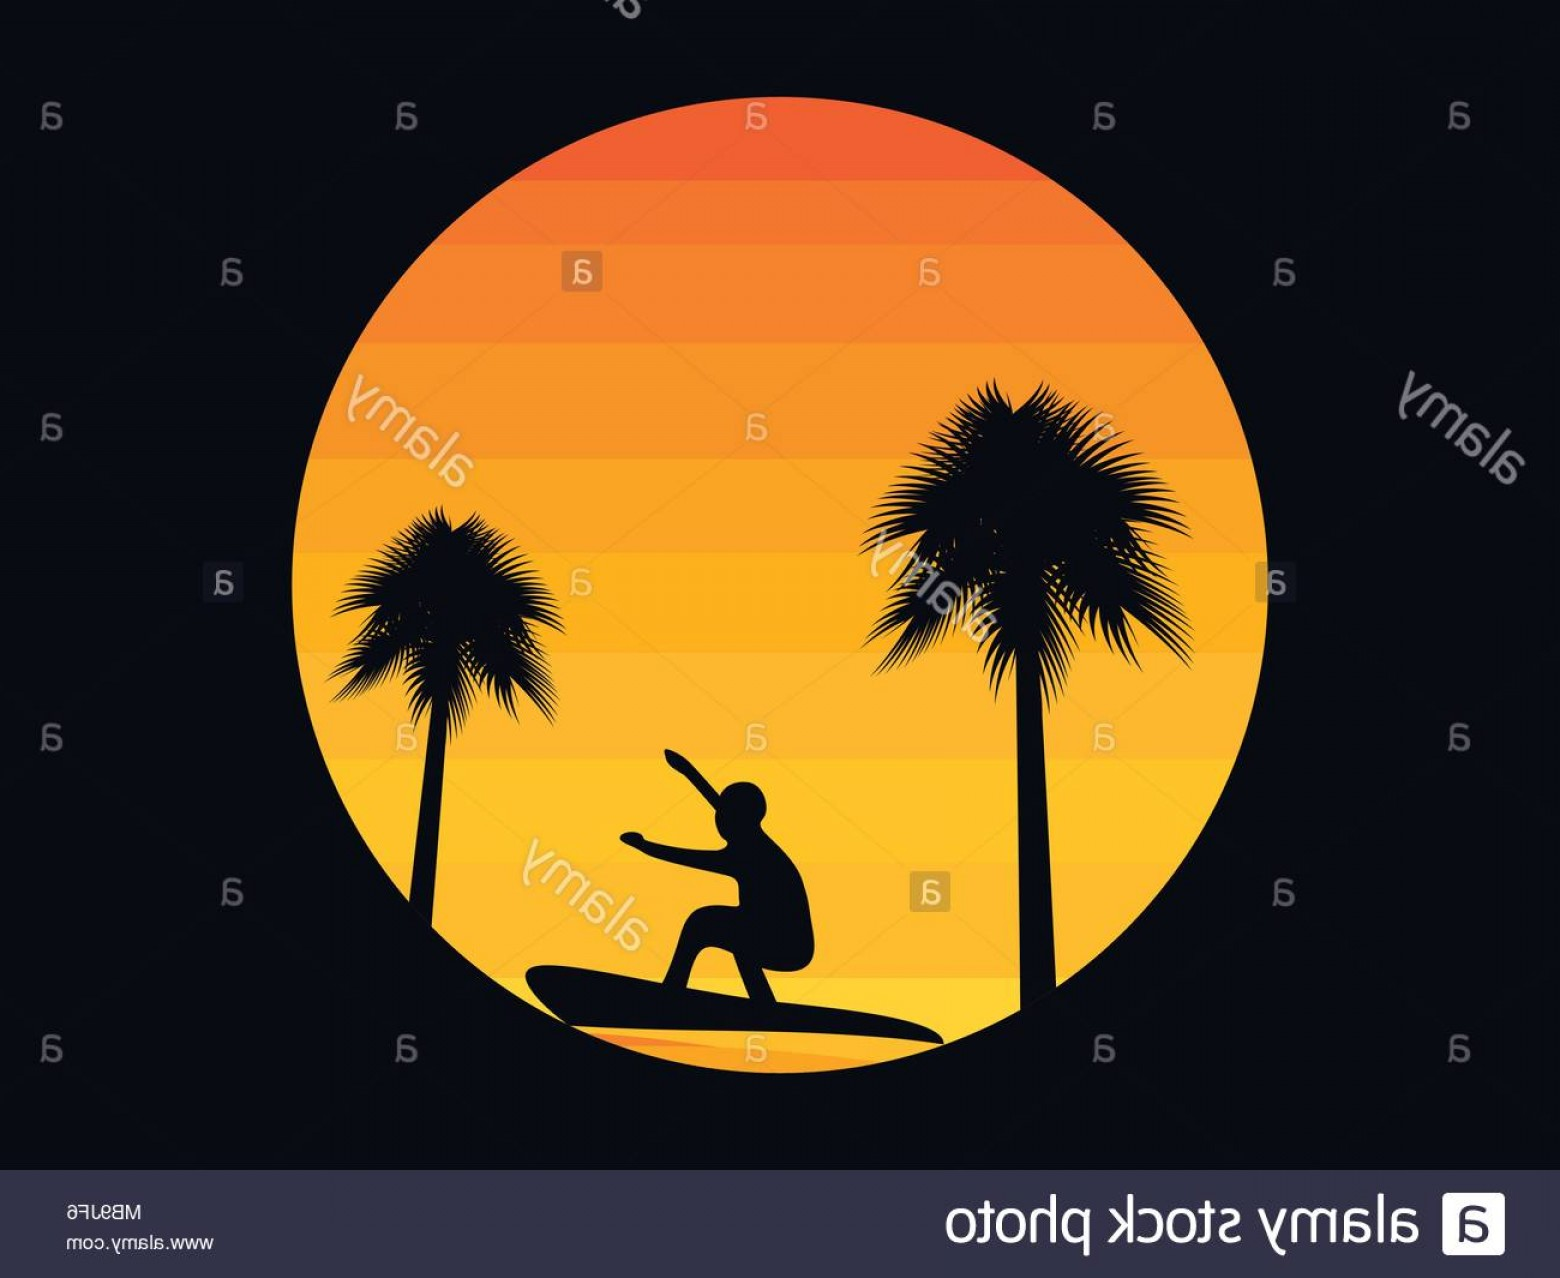 Surfer Beach Sunset Vector: Palm Trees And A Surfer On A Sunset Background In The Style Of The S Tropical Sunrise Or Sunset Vector Illustration Image